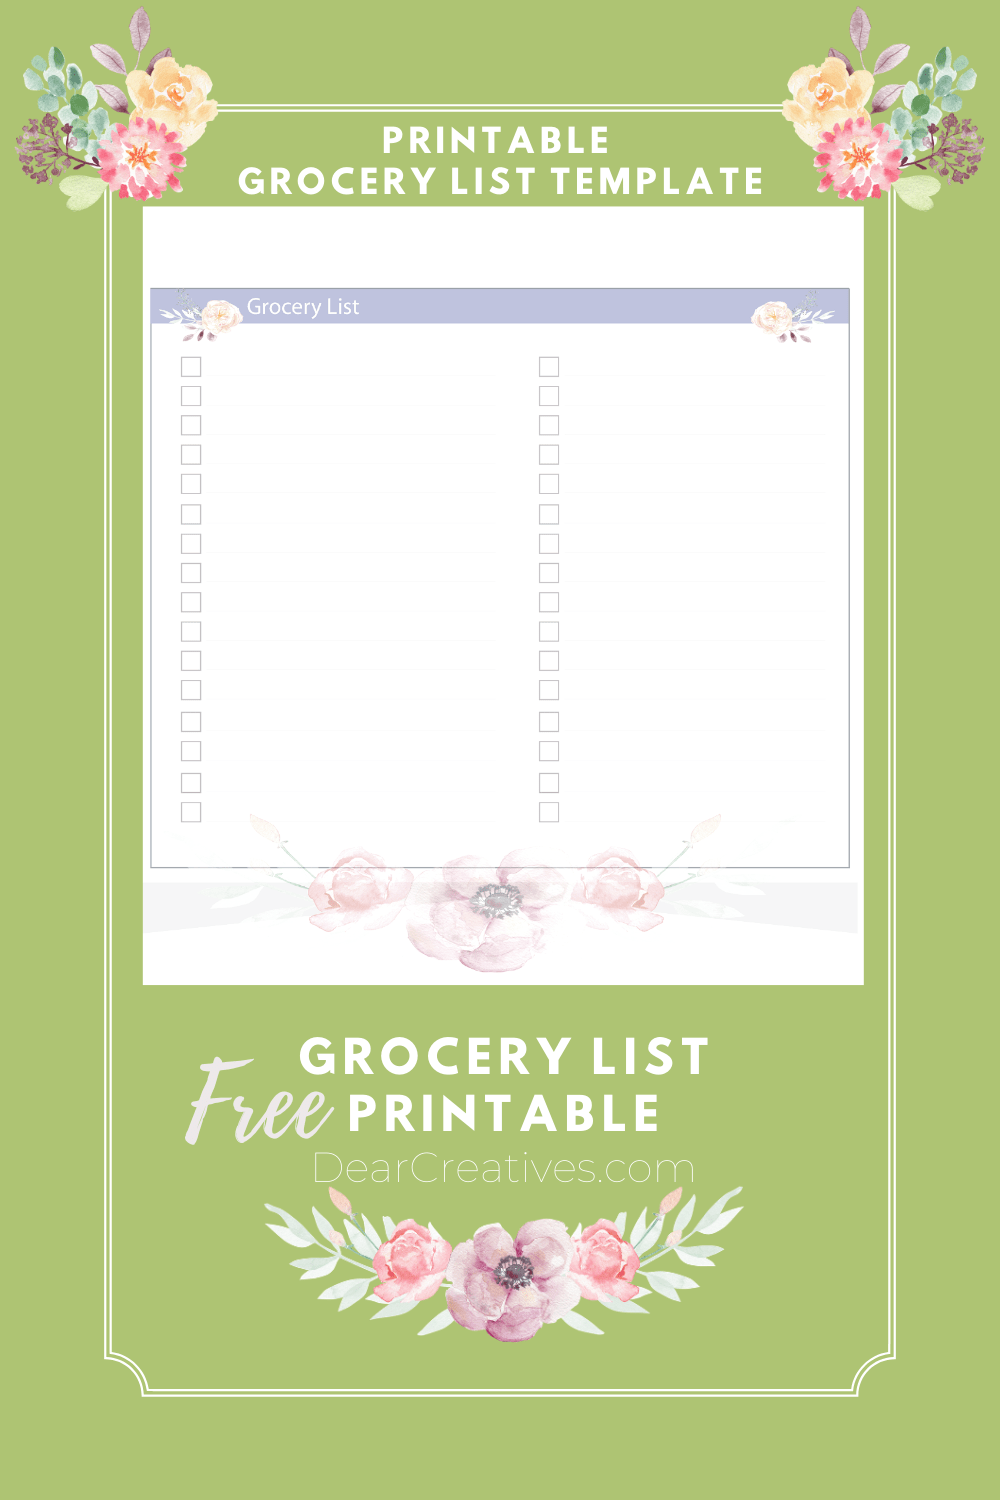 Printable Grocery List – Printable Grocery List Template